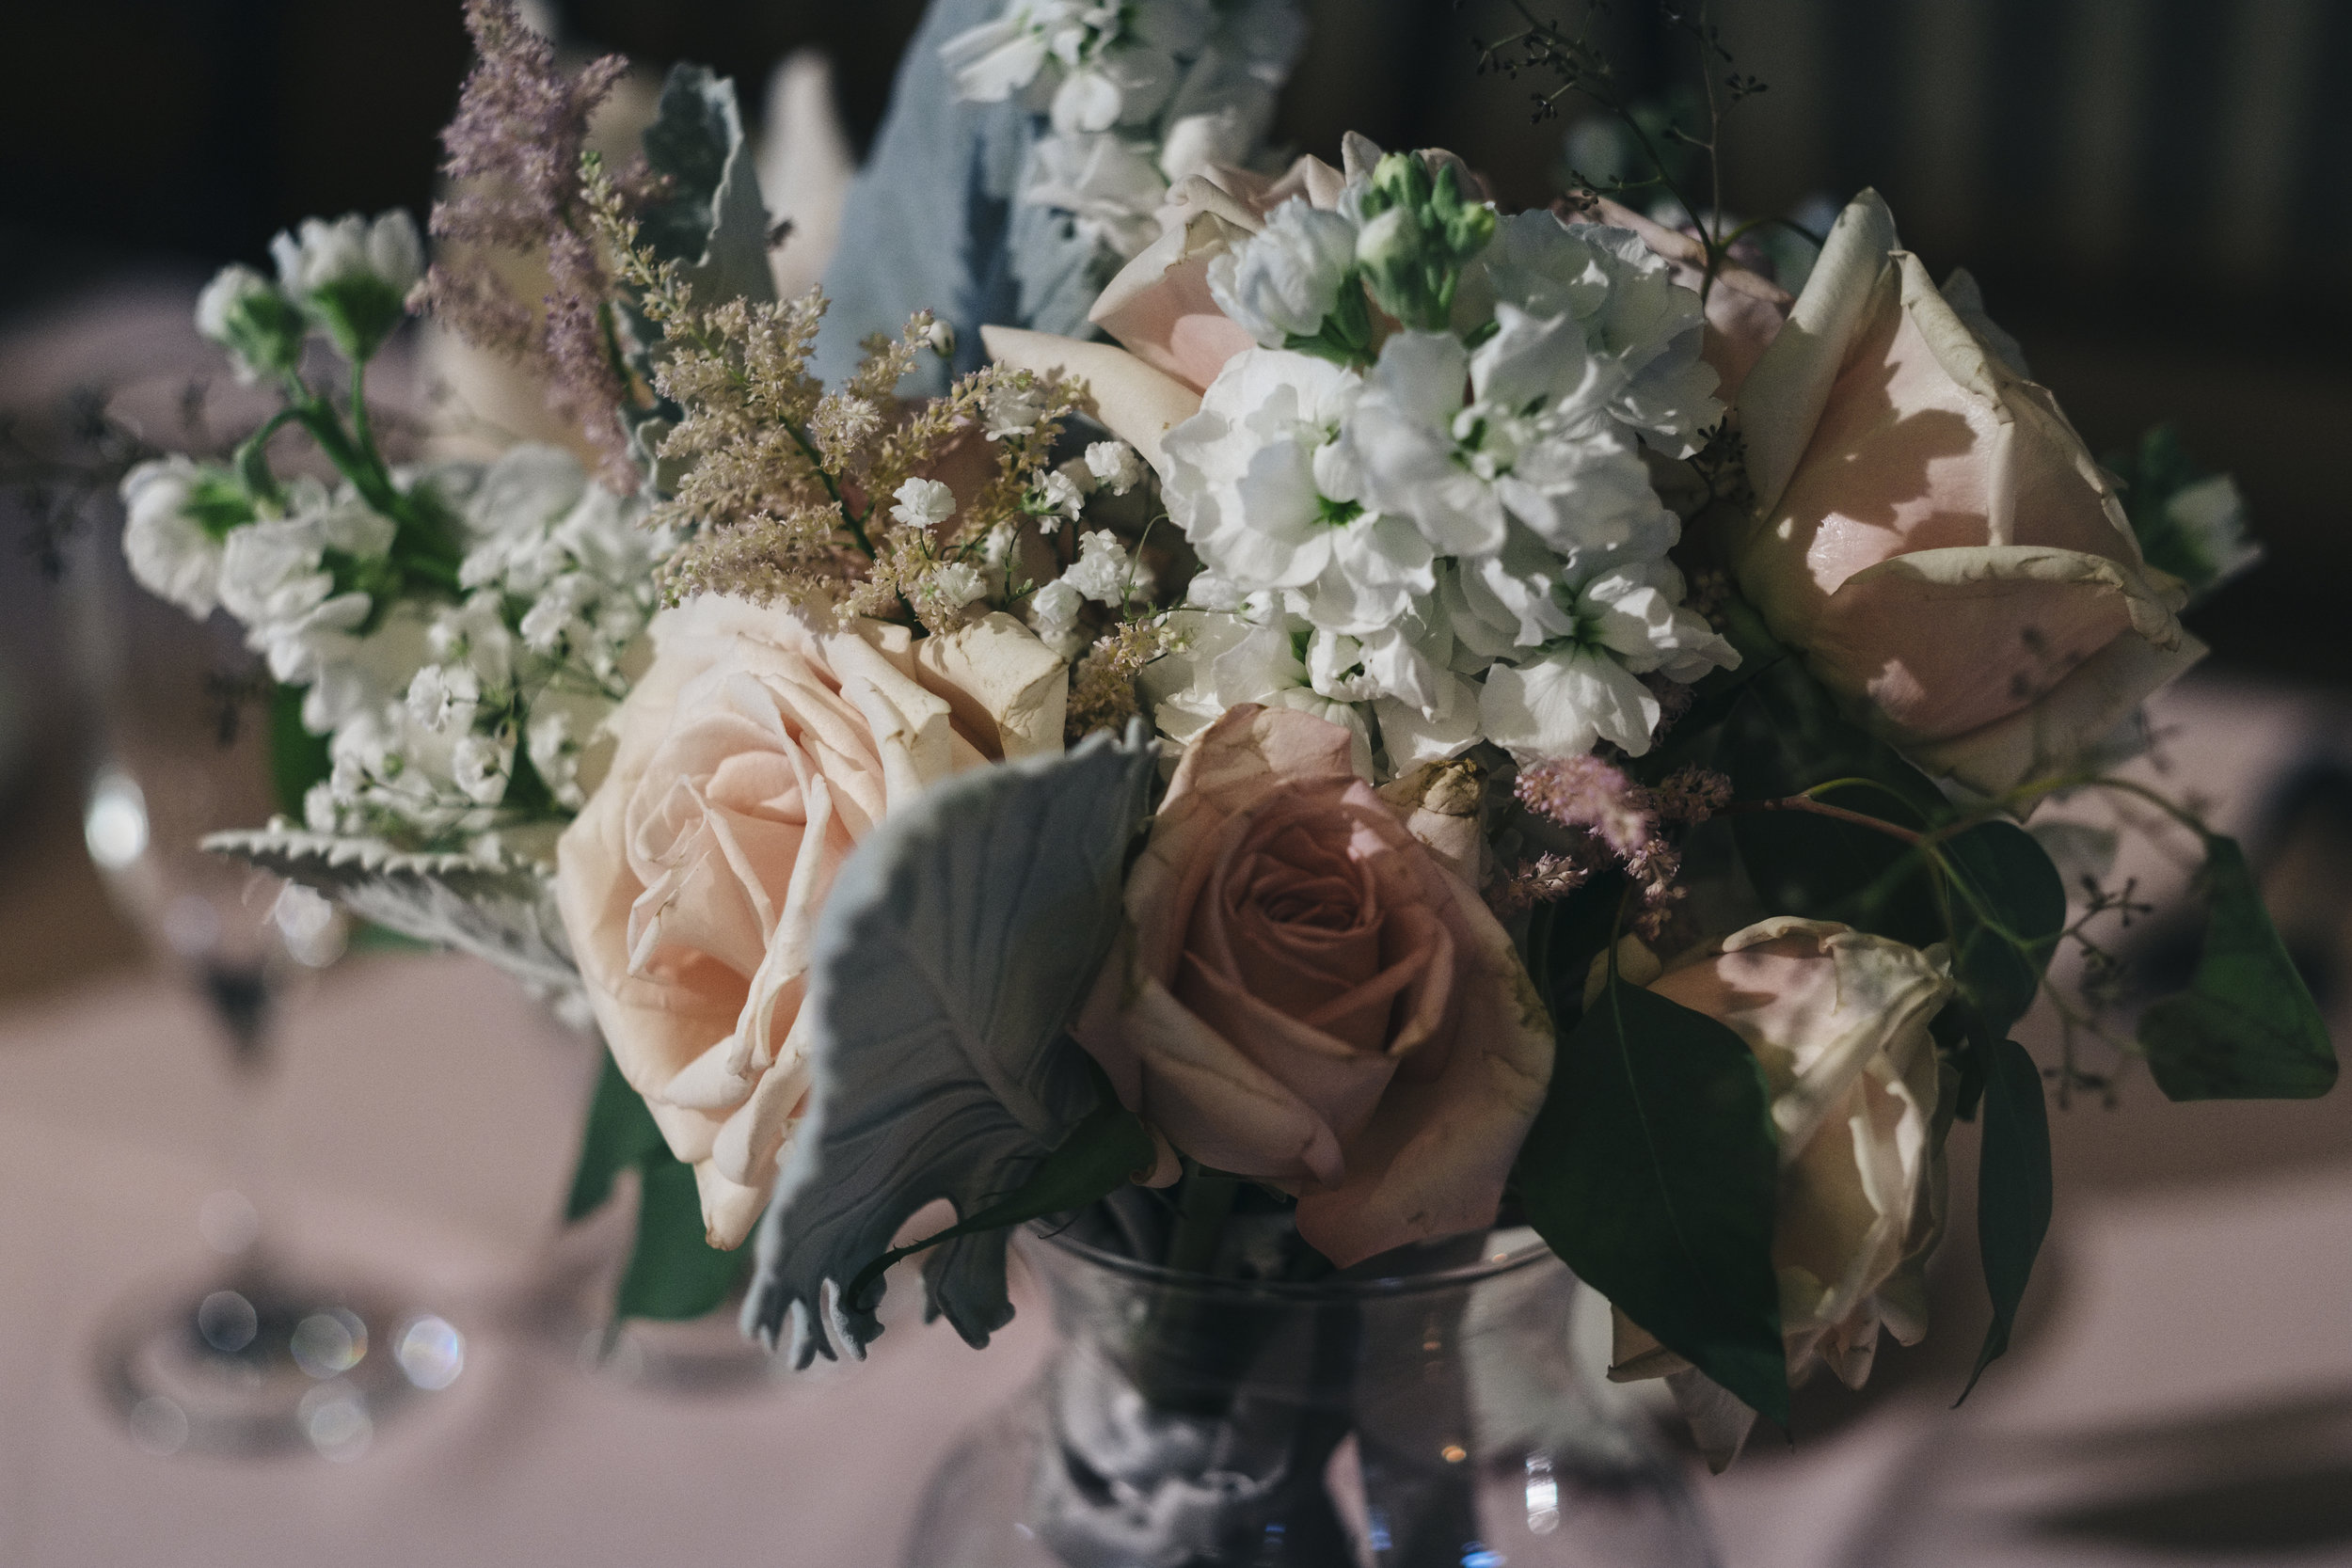 Floral Design by La Boutique Nostalgie at Wedding Reception with Toledo Photographers